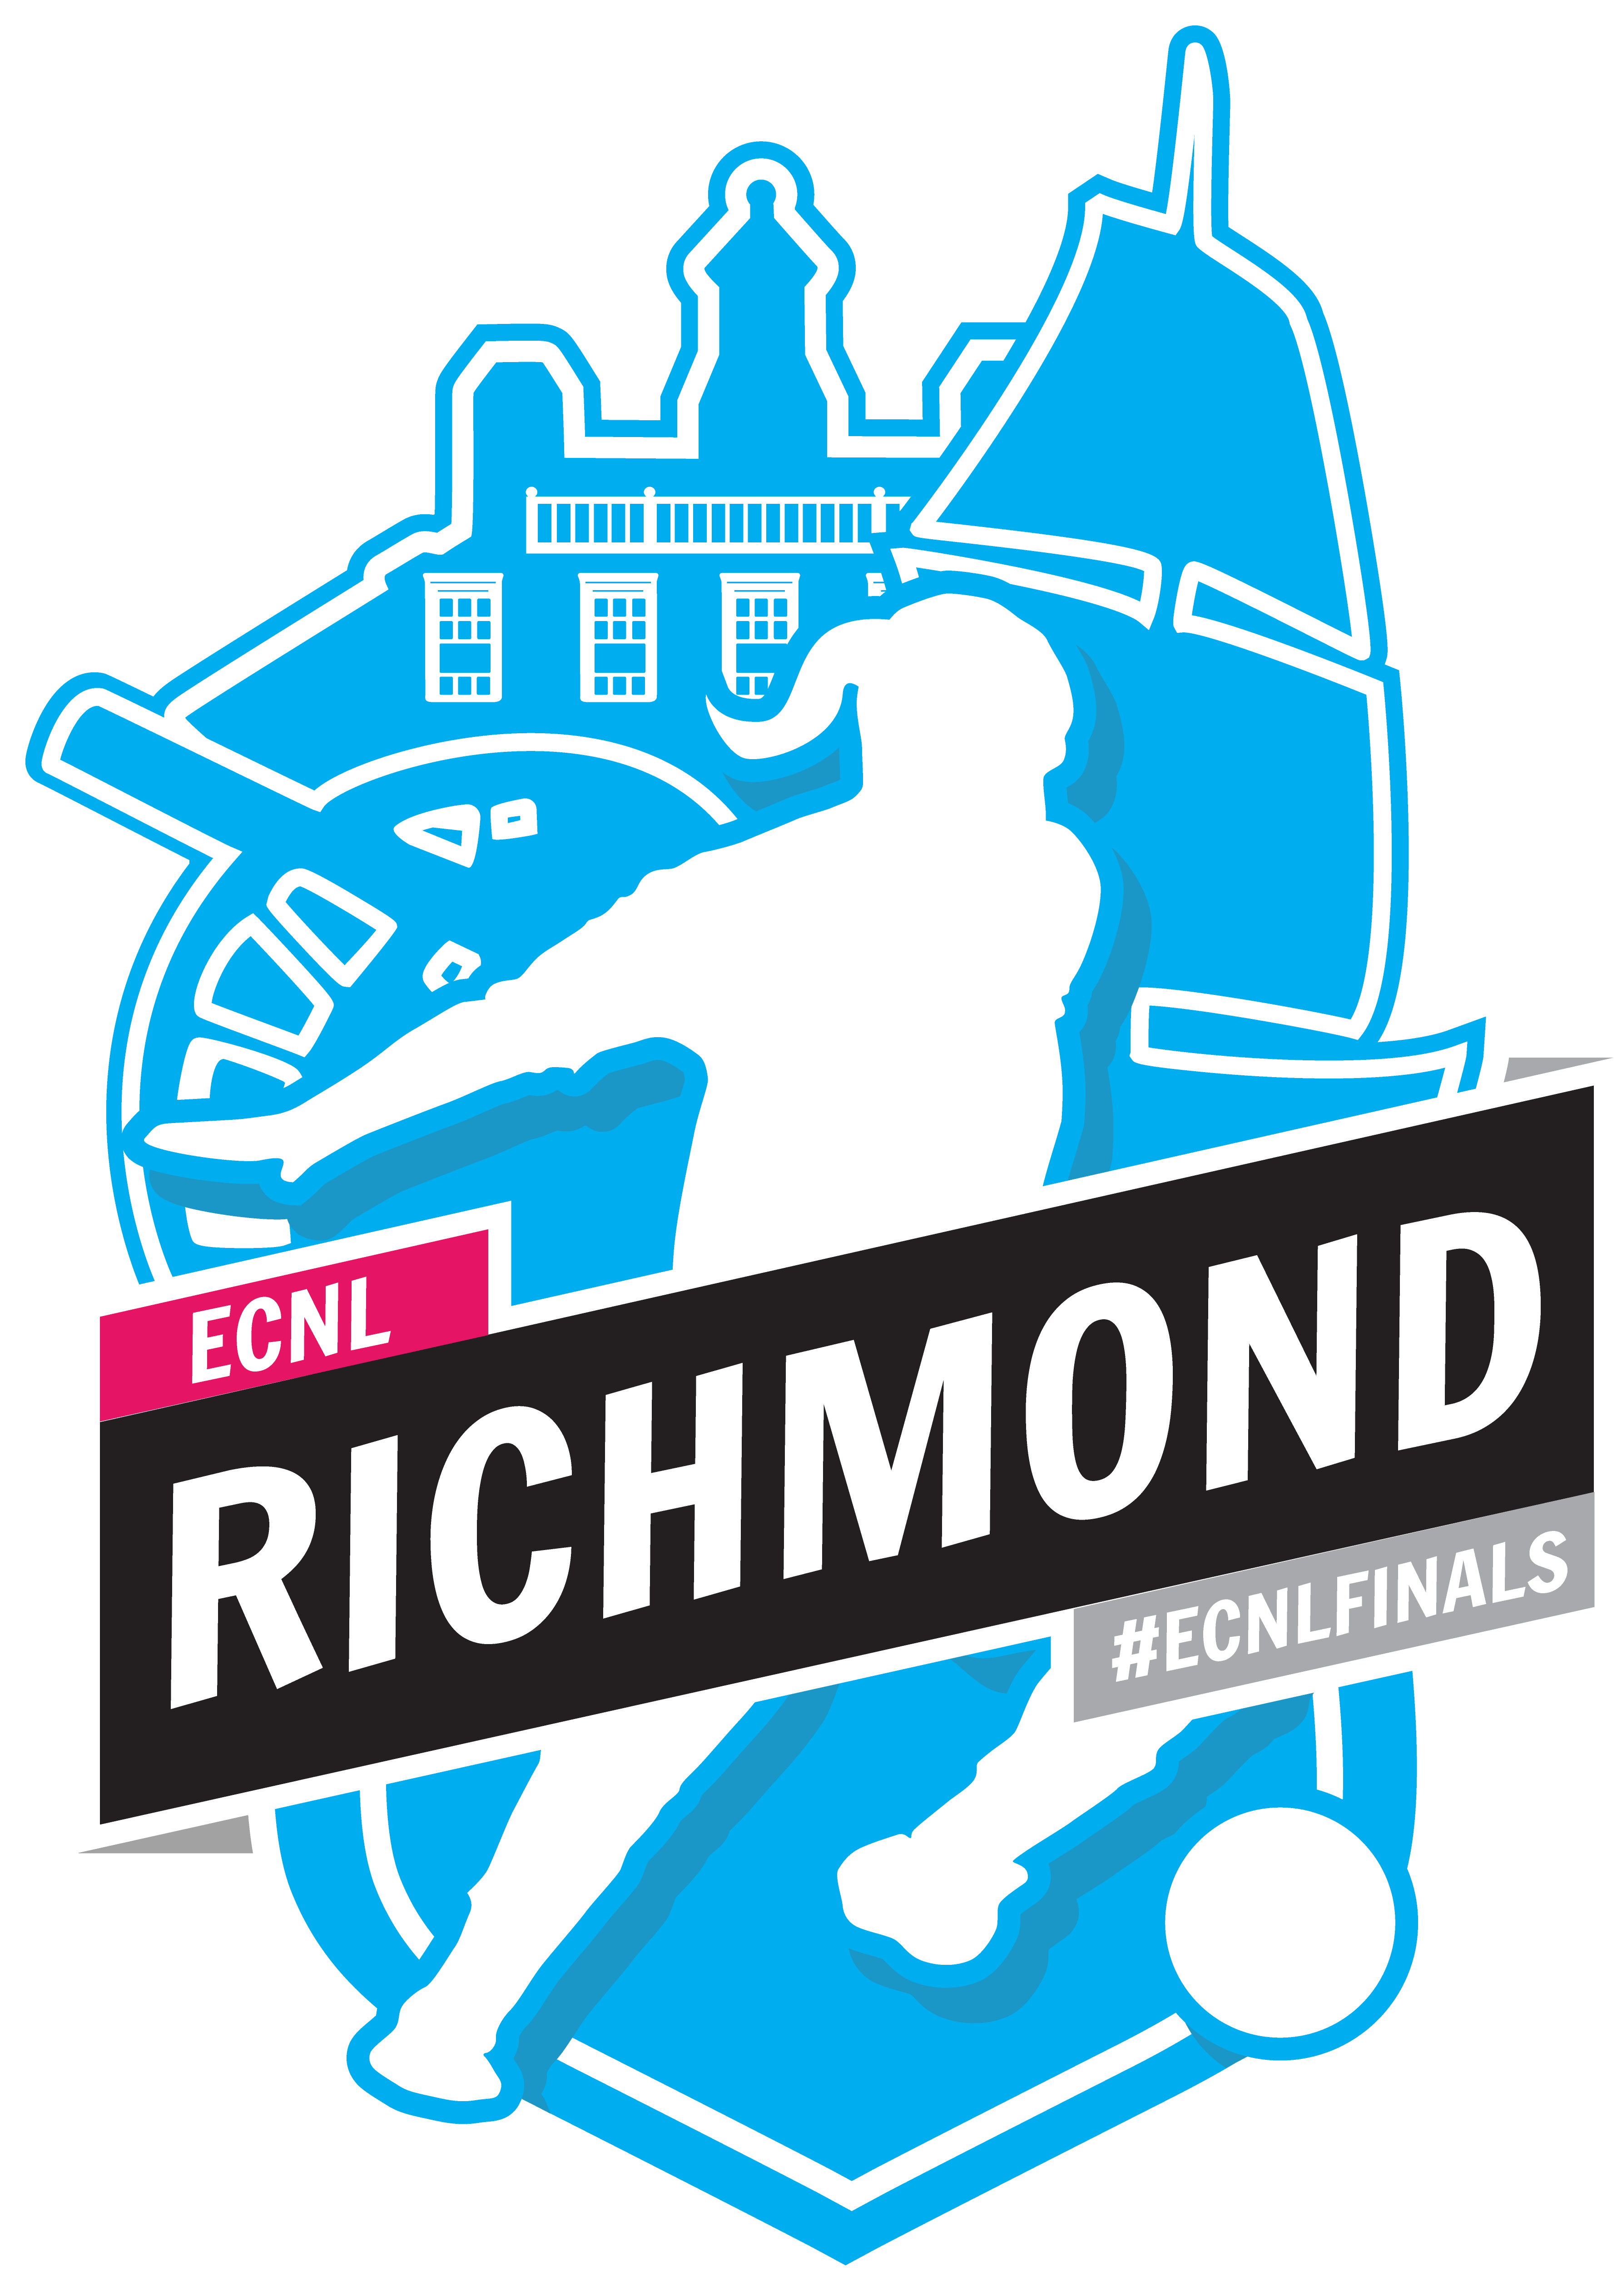 ECNL_RICHMOND_2015_PRIMARY-COLOR (1)